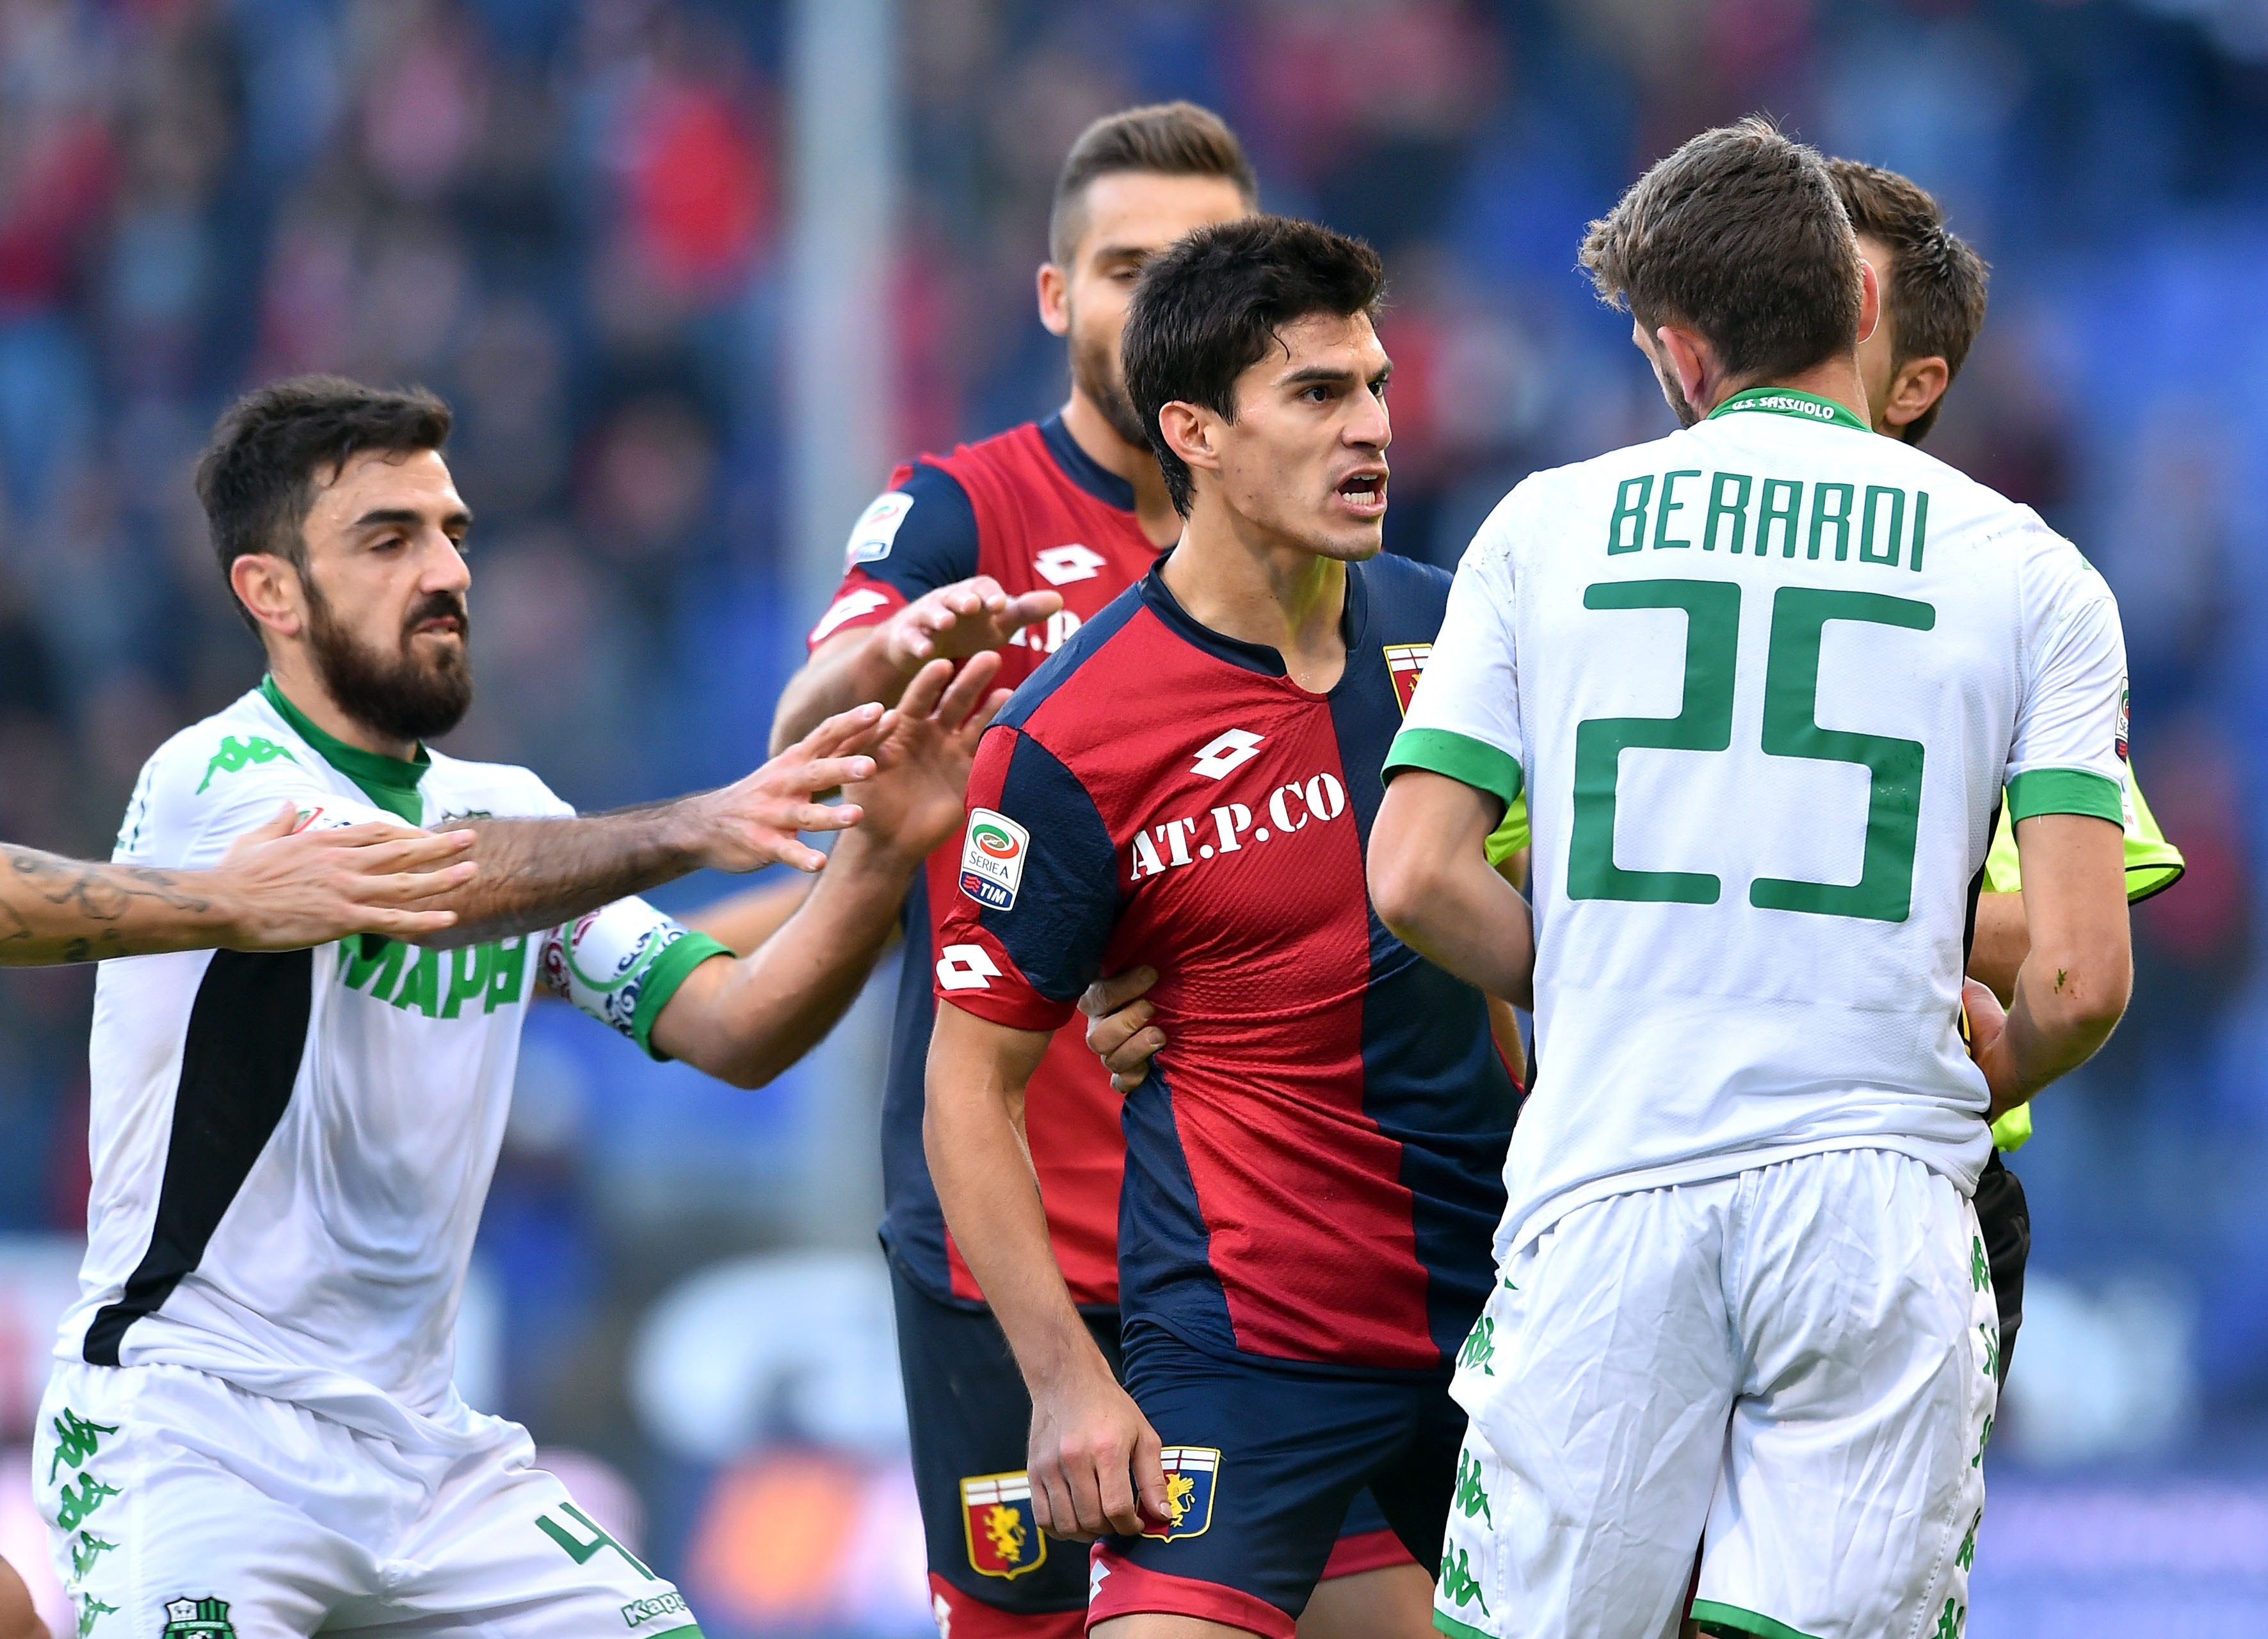 GENOA, ITALY - NOVEMBER 22: Diego Perotti of Genoa CFC argues with Domenico Berardi of Sassuolo during the Serie A match between Genoa CFC and US Sassuolo Calcio at Stadio Luigi Ferraris on November 22, 2015 in Genoa, Italy. (Photo by Getty Images/Getty Images)